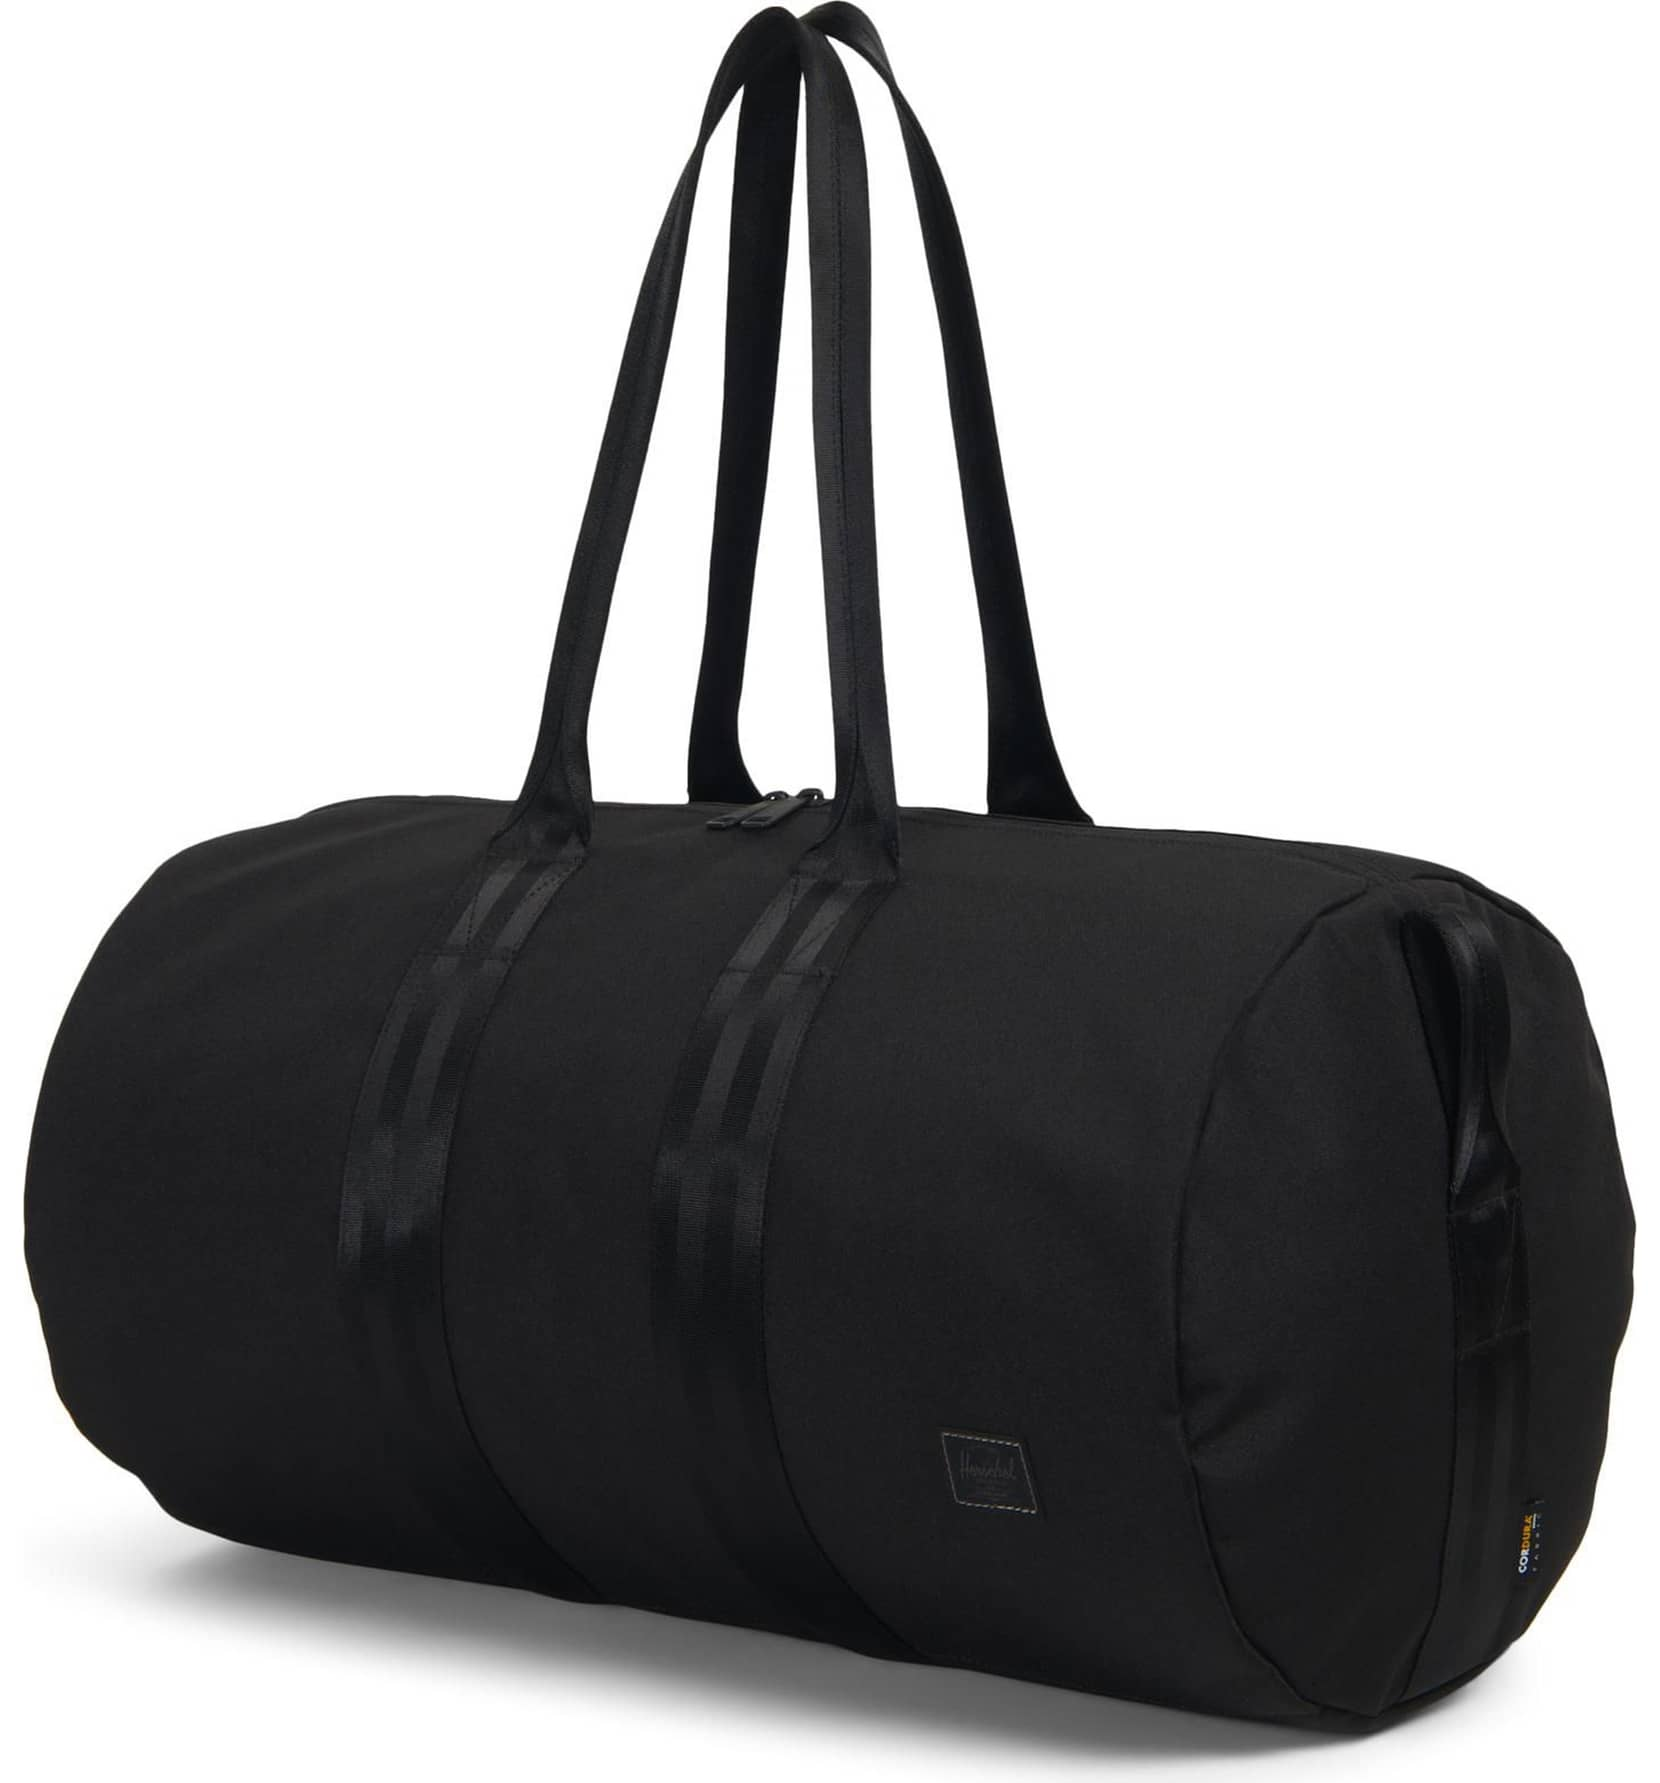 Gym Bag Herschel: This Chic Designer Gym Bag Is On Sale For Half Off At